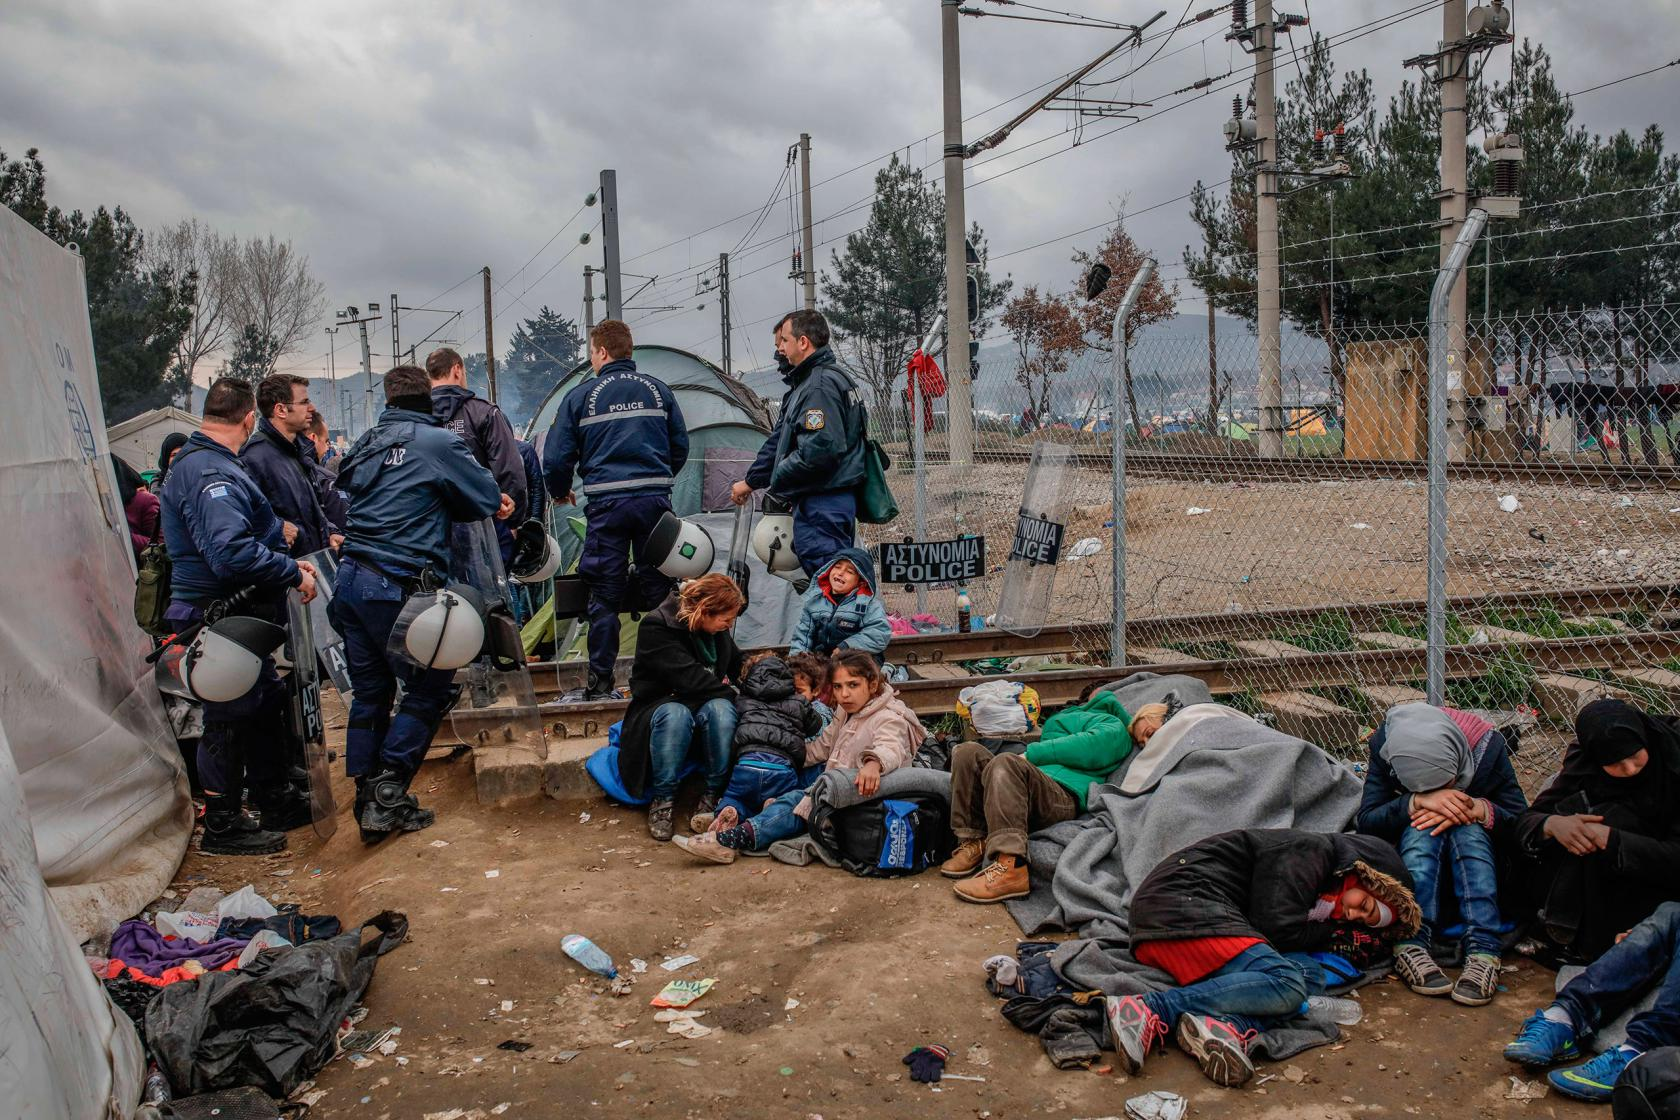 Greece: Refugees in Idomeni